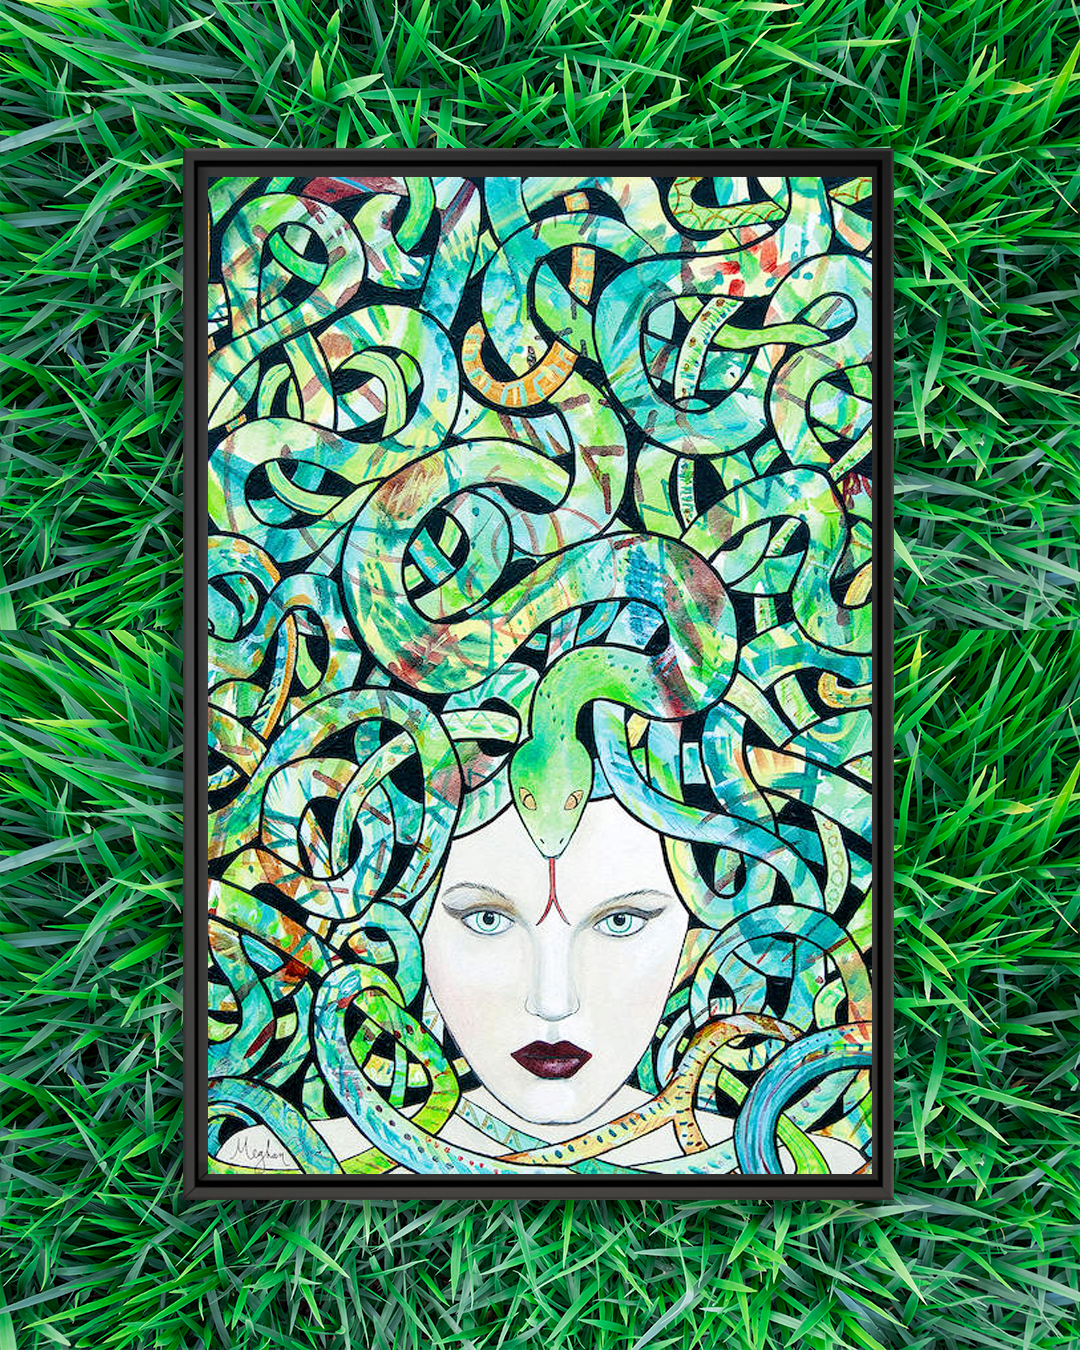 woman with medusa-like pattern and a green snake